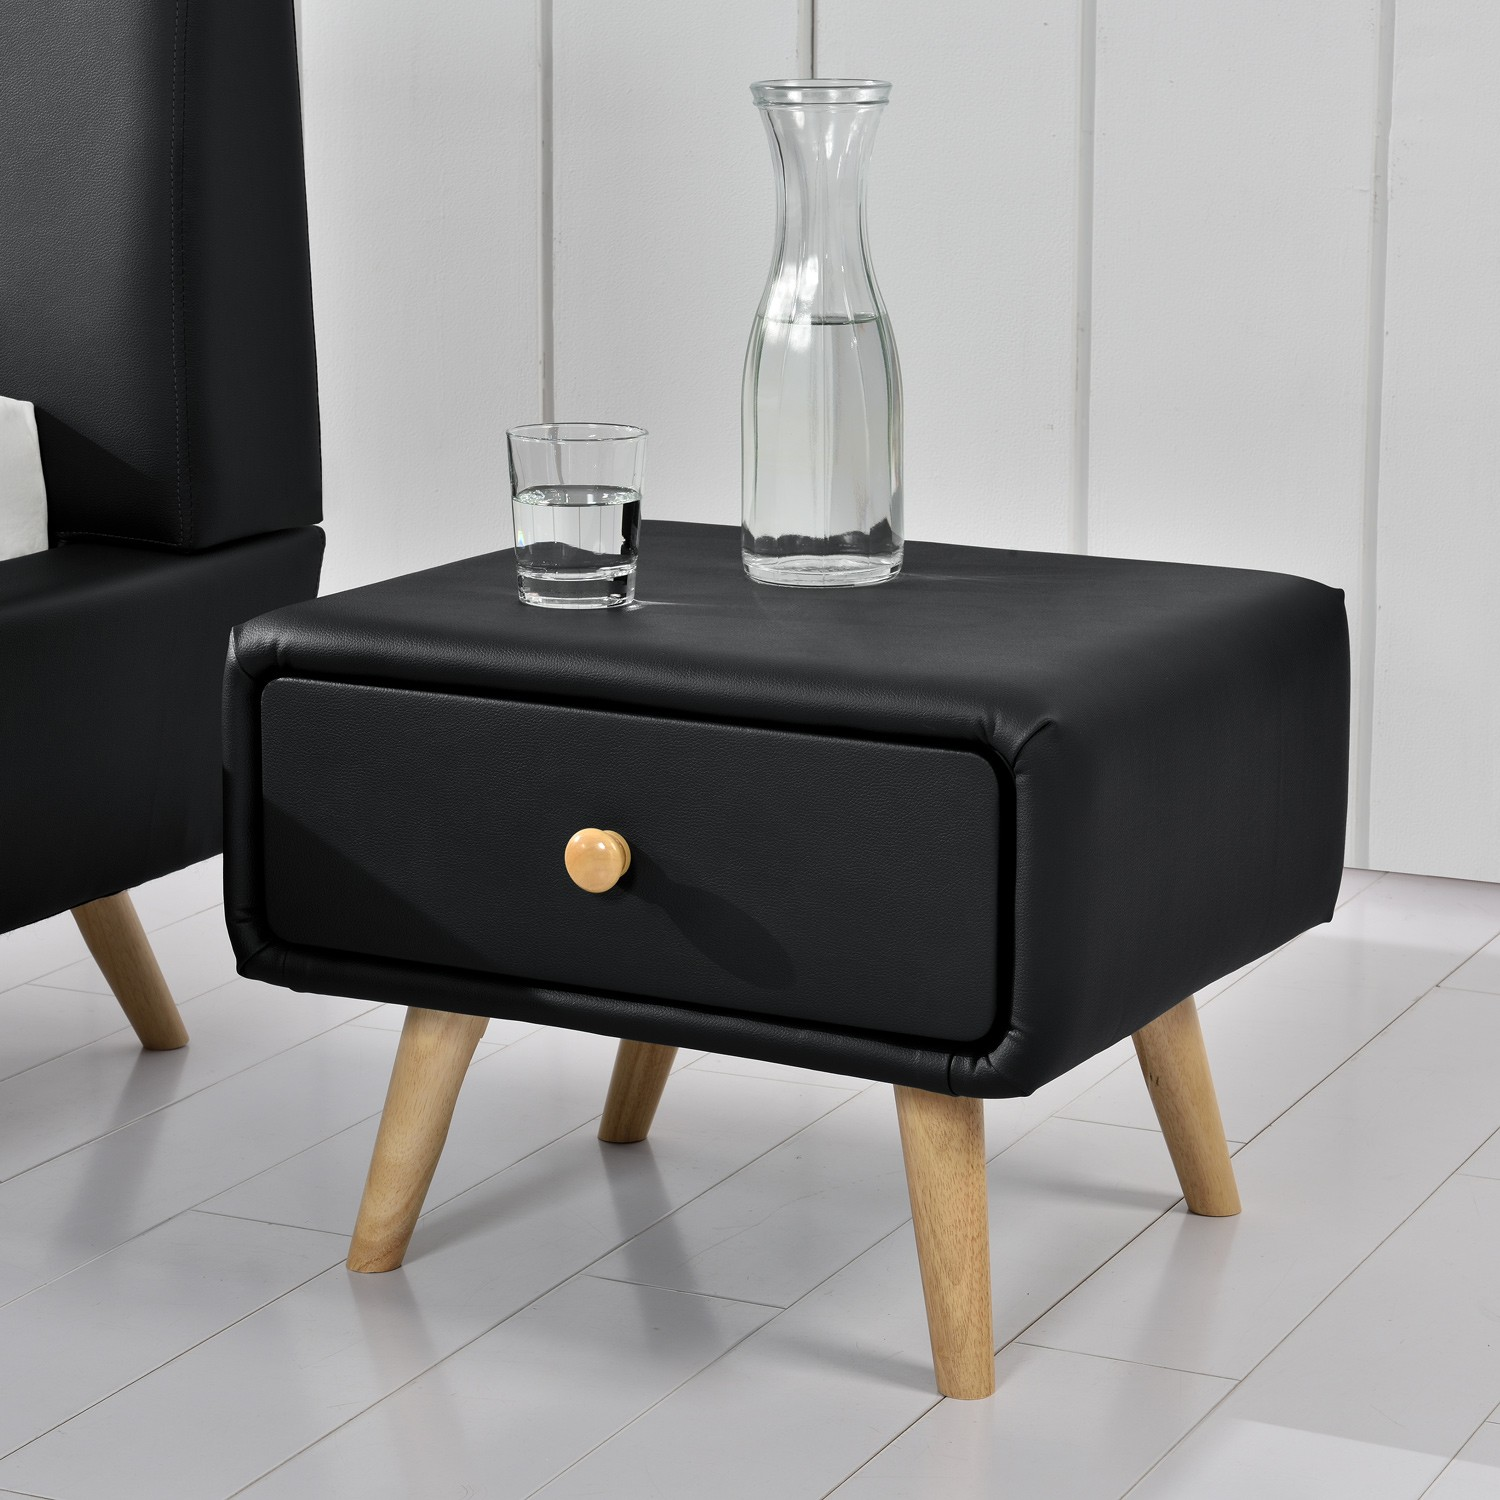 miko noir table de chevet scandinave noir avec 1 tiroir et 4 pieds en bois. Black Bedroom Furniture Sets. Home Design Ideas